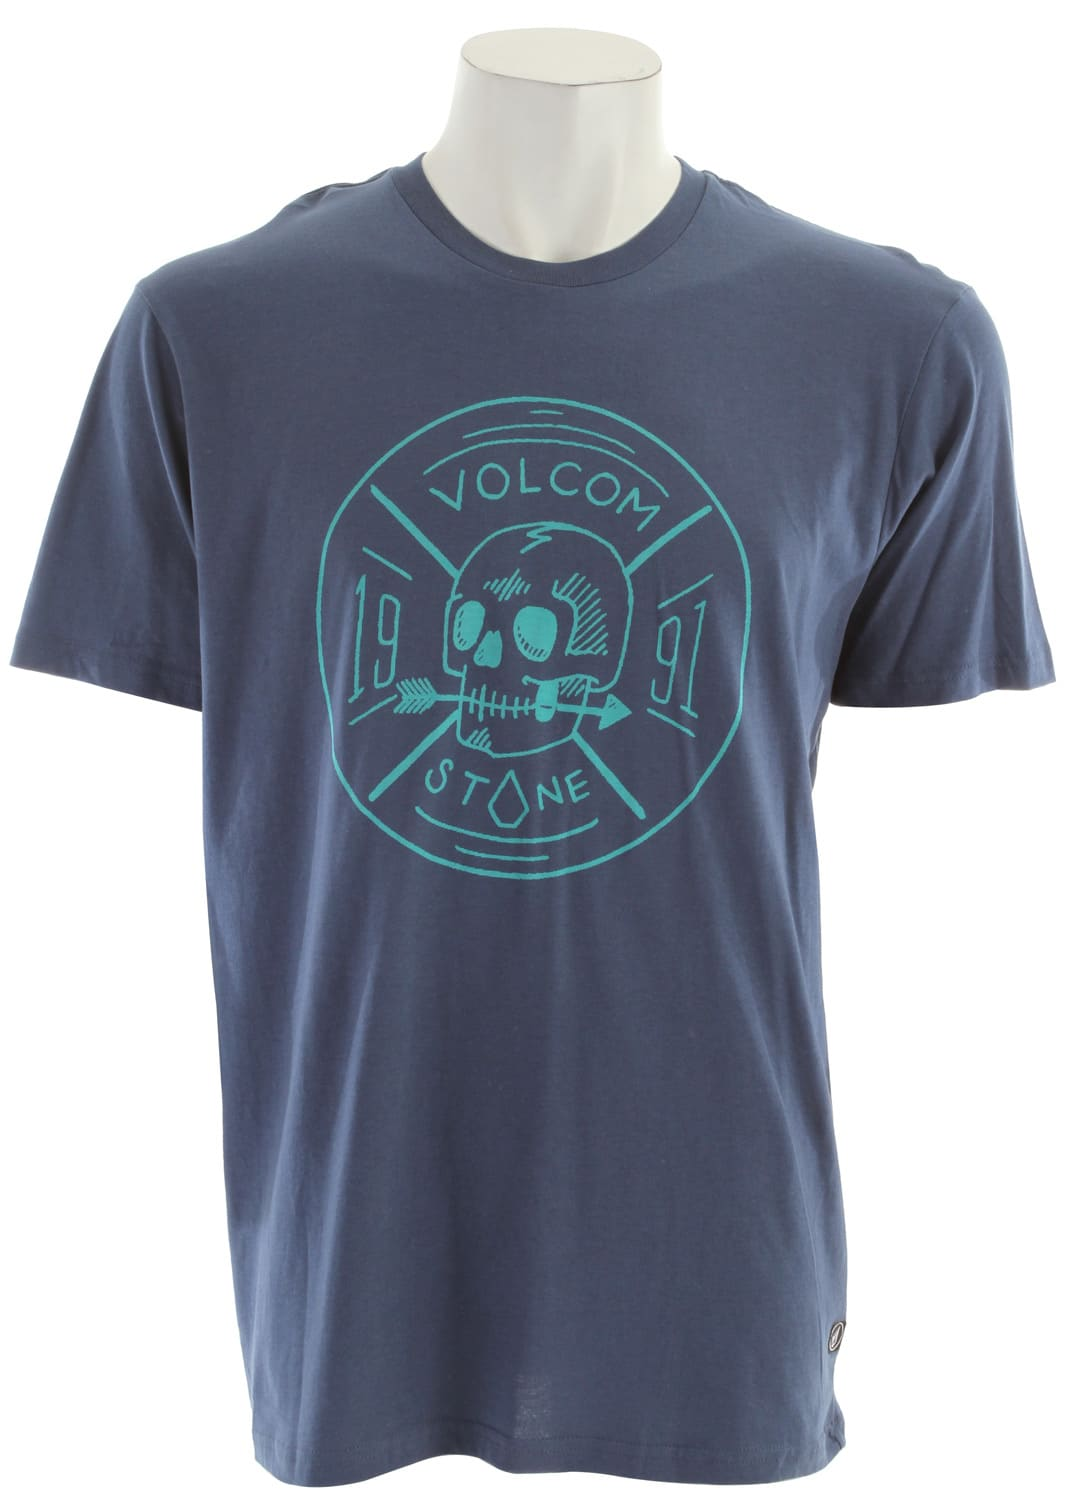 Shop for Volcom Territorial T-Shirt Blue Moon - Men's